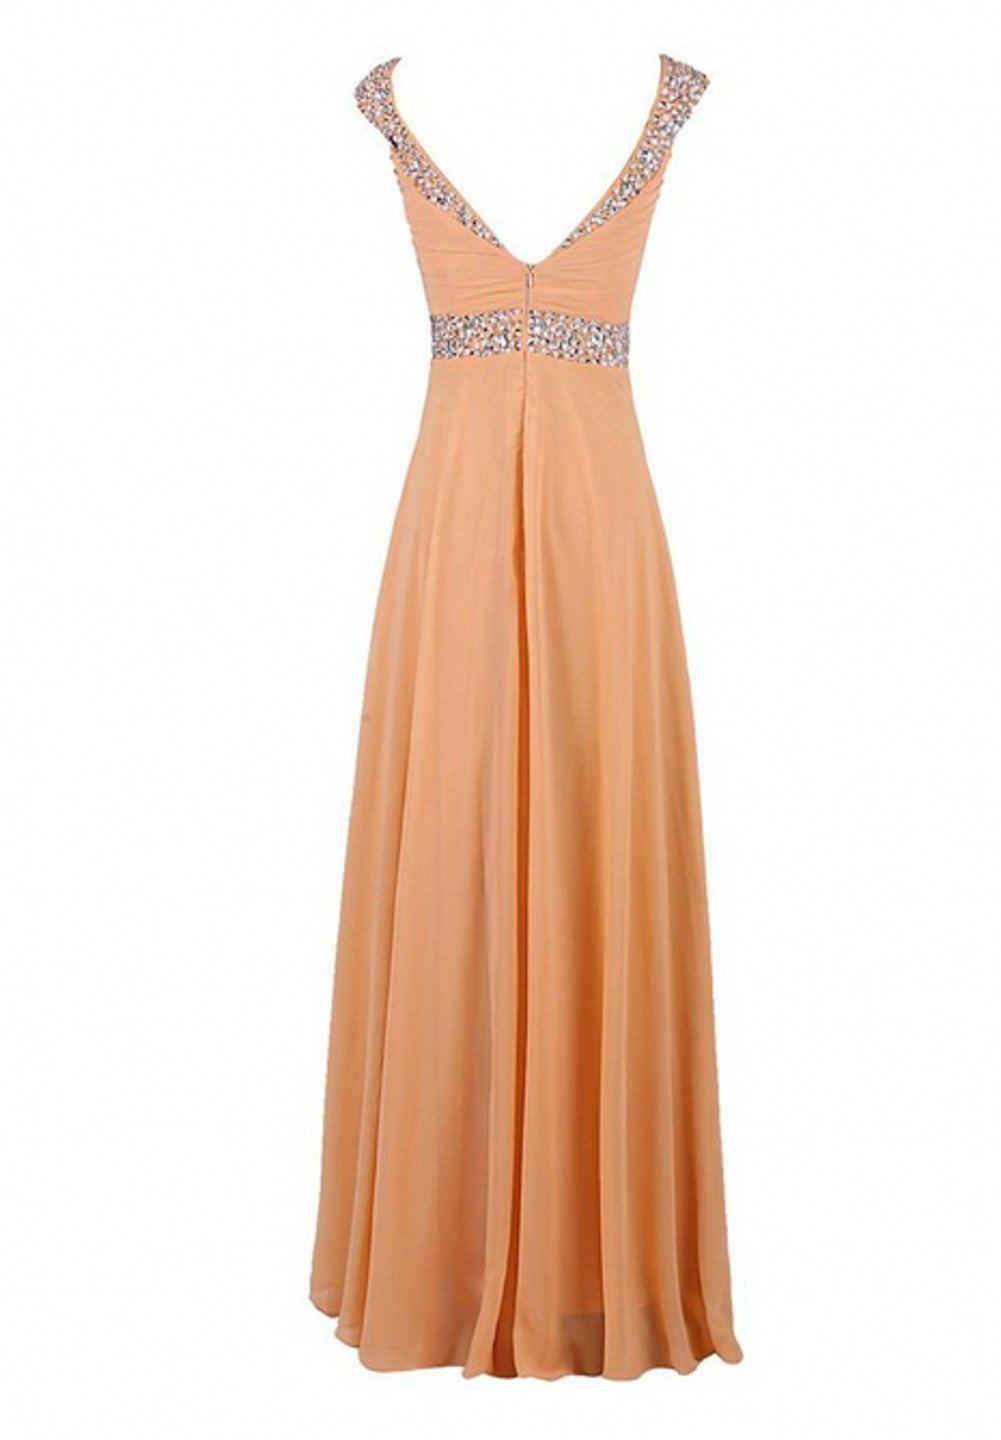 Love Dress Women Long Bridesmaid Dress Prom Party Gown Coral Us 26w by Love To Dress (Image #3)